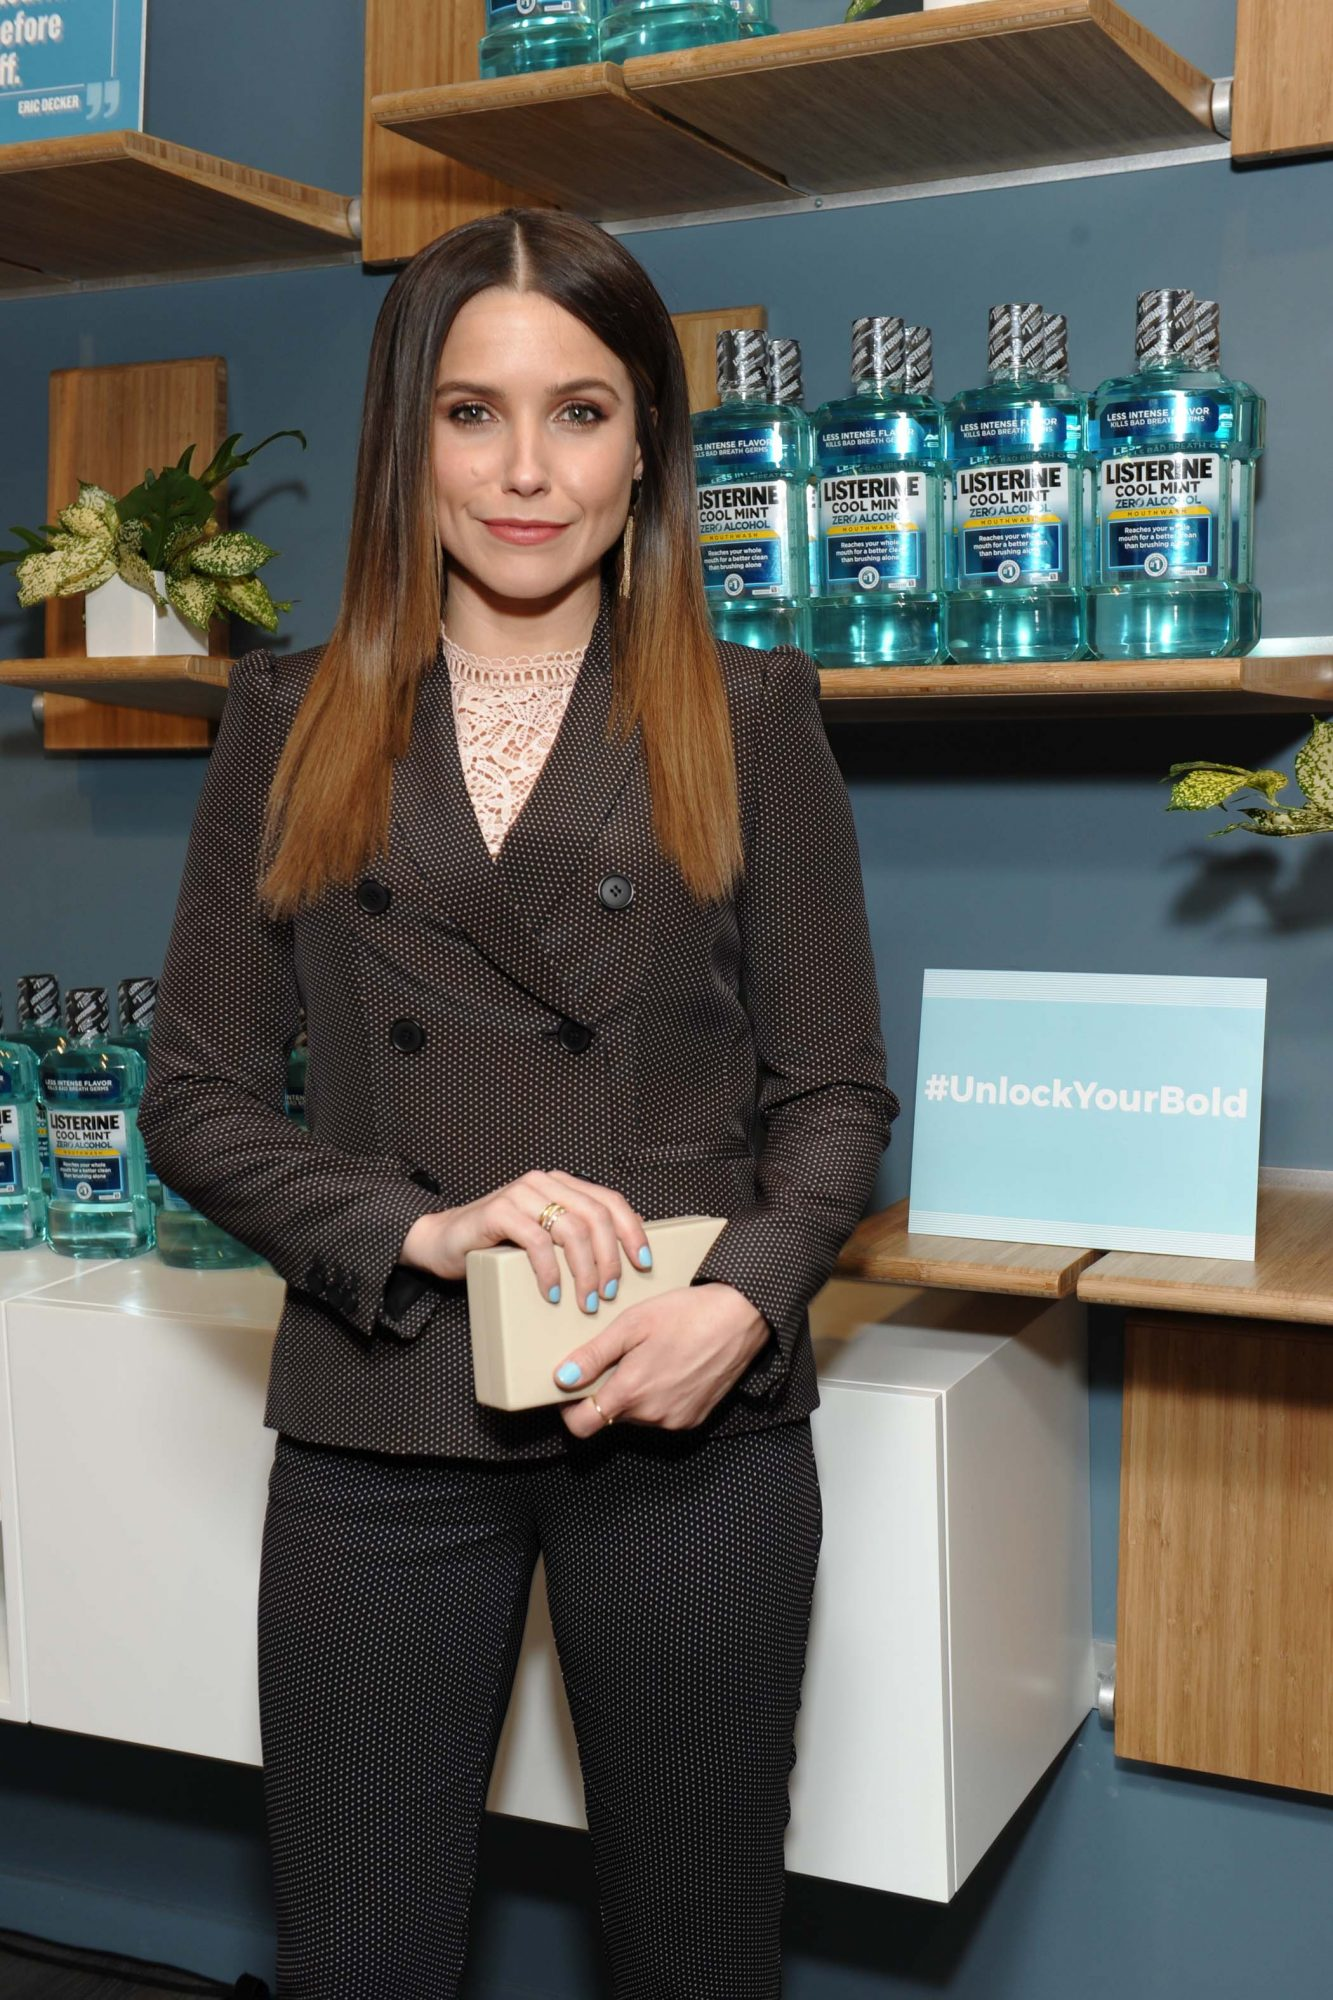 """LISTERINE Brand launches #UnlockYourBold with Sophia Bush, Eric Decker and Stephen `tWitch` BossCaption: Sophia Bush, Eric Decker and Stephen """"tWitch"""" Boss joined LISTERINE® Brand for the launch of #UnlockYourBold celebrating the power of small habits and how they inspire bold action.  The event also featured a special meditation session featuring the new Be Bold Collection of meditations LISTERINE® Brand developed in partnership with INSCAPE."""